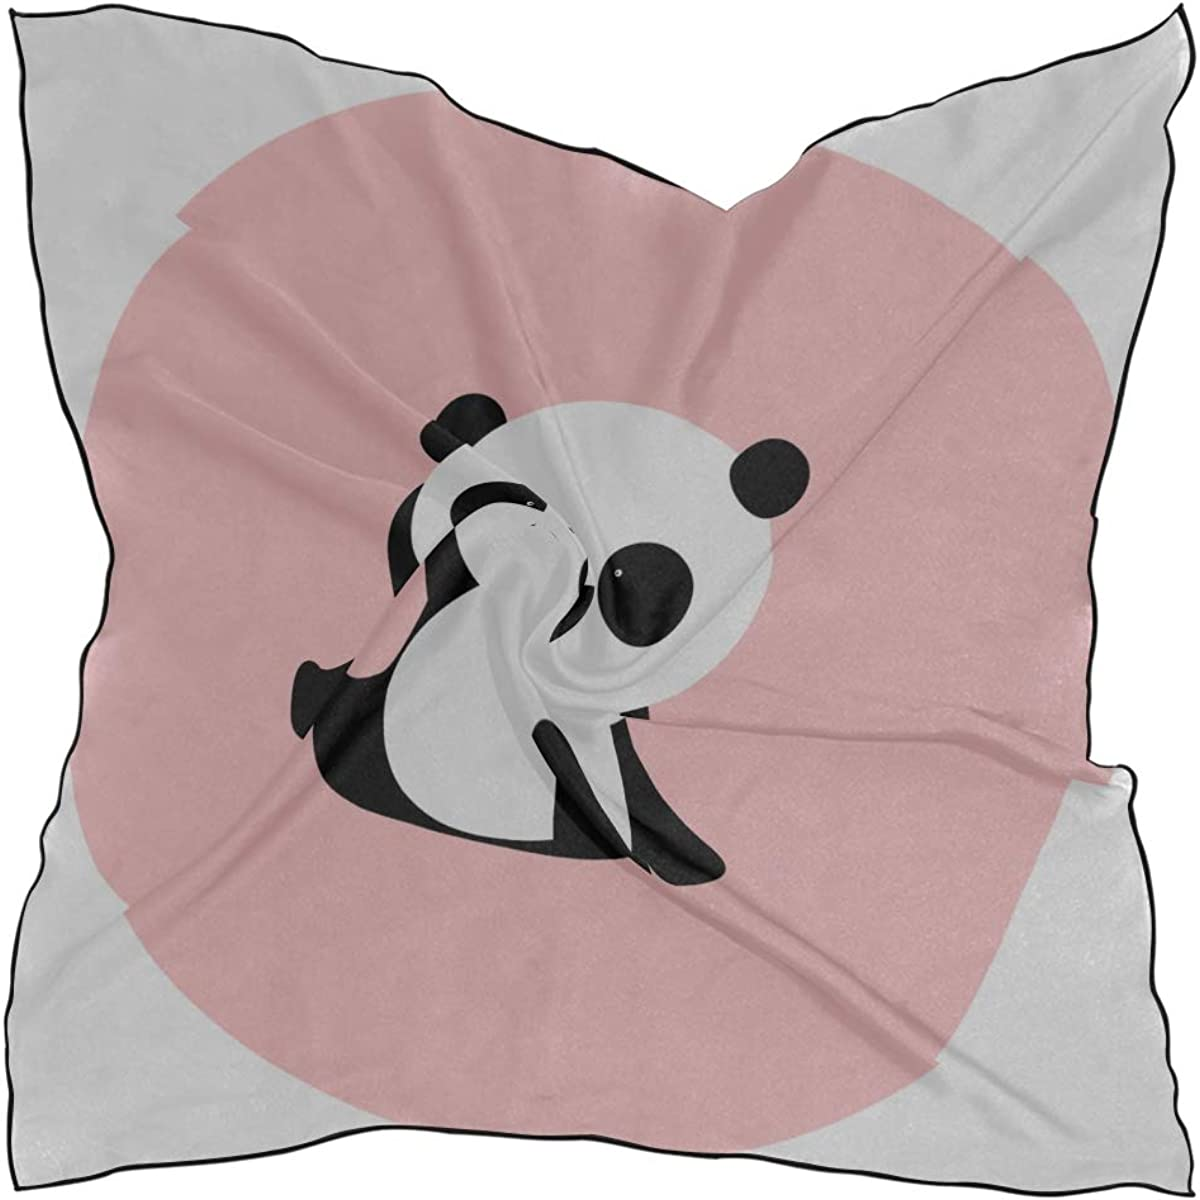 Soft Polyester Silk Face Scarves Fashion Print Chinese Panda Cartoon Fashion Scarves Headband Women Head Scarf Womens Lightweight Scarves Multiple Ways Of Wearing Daily Decor